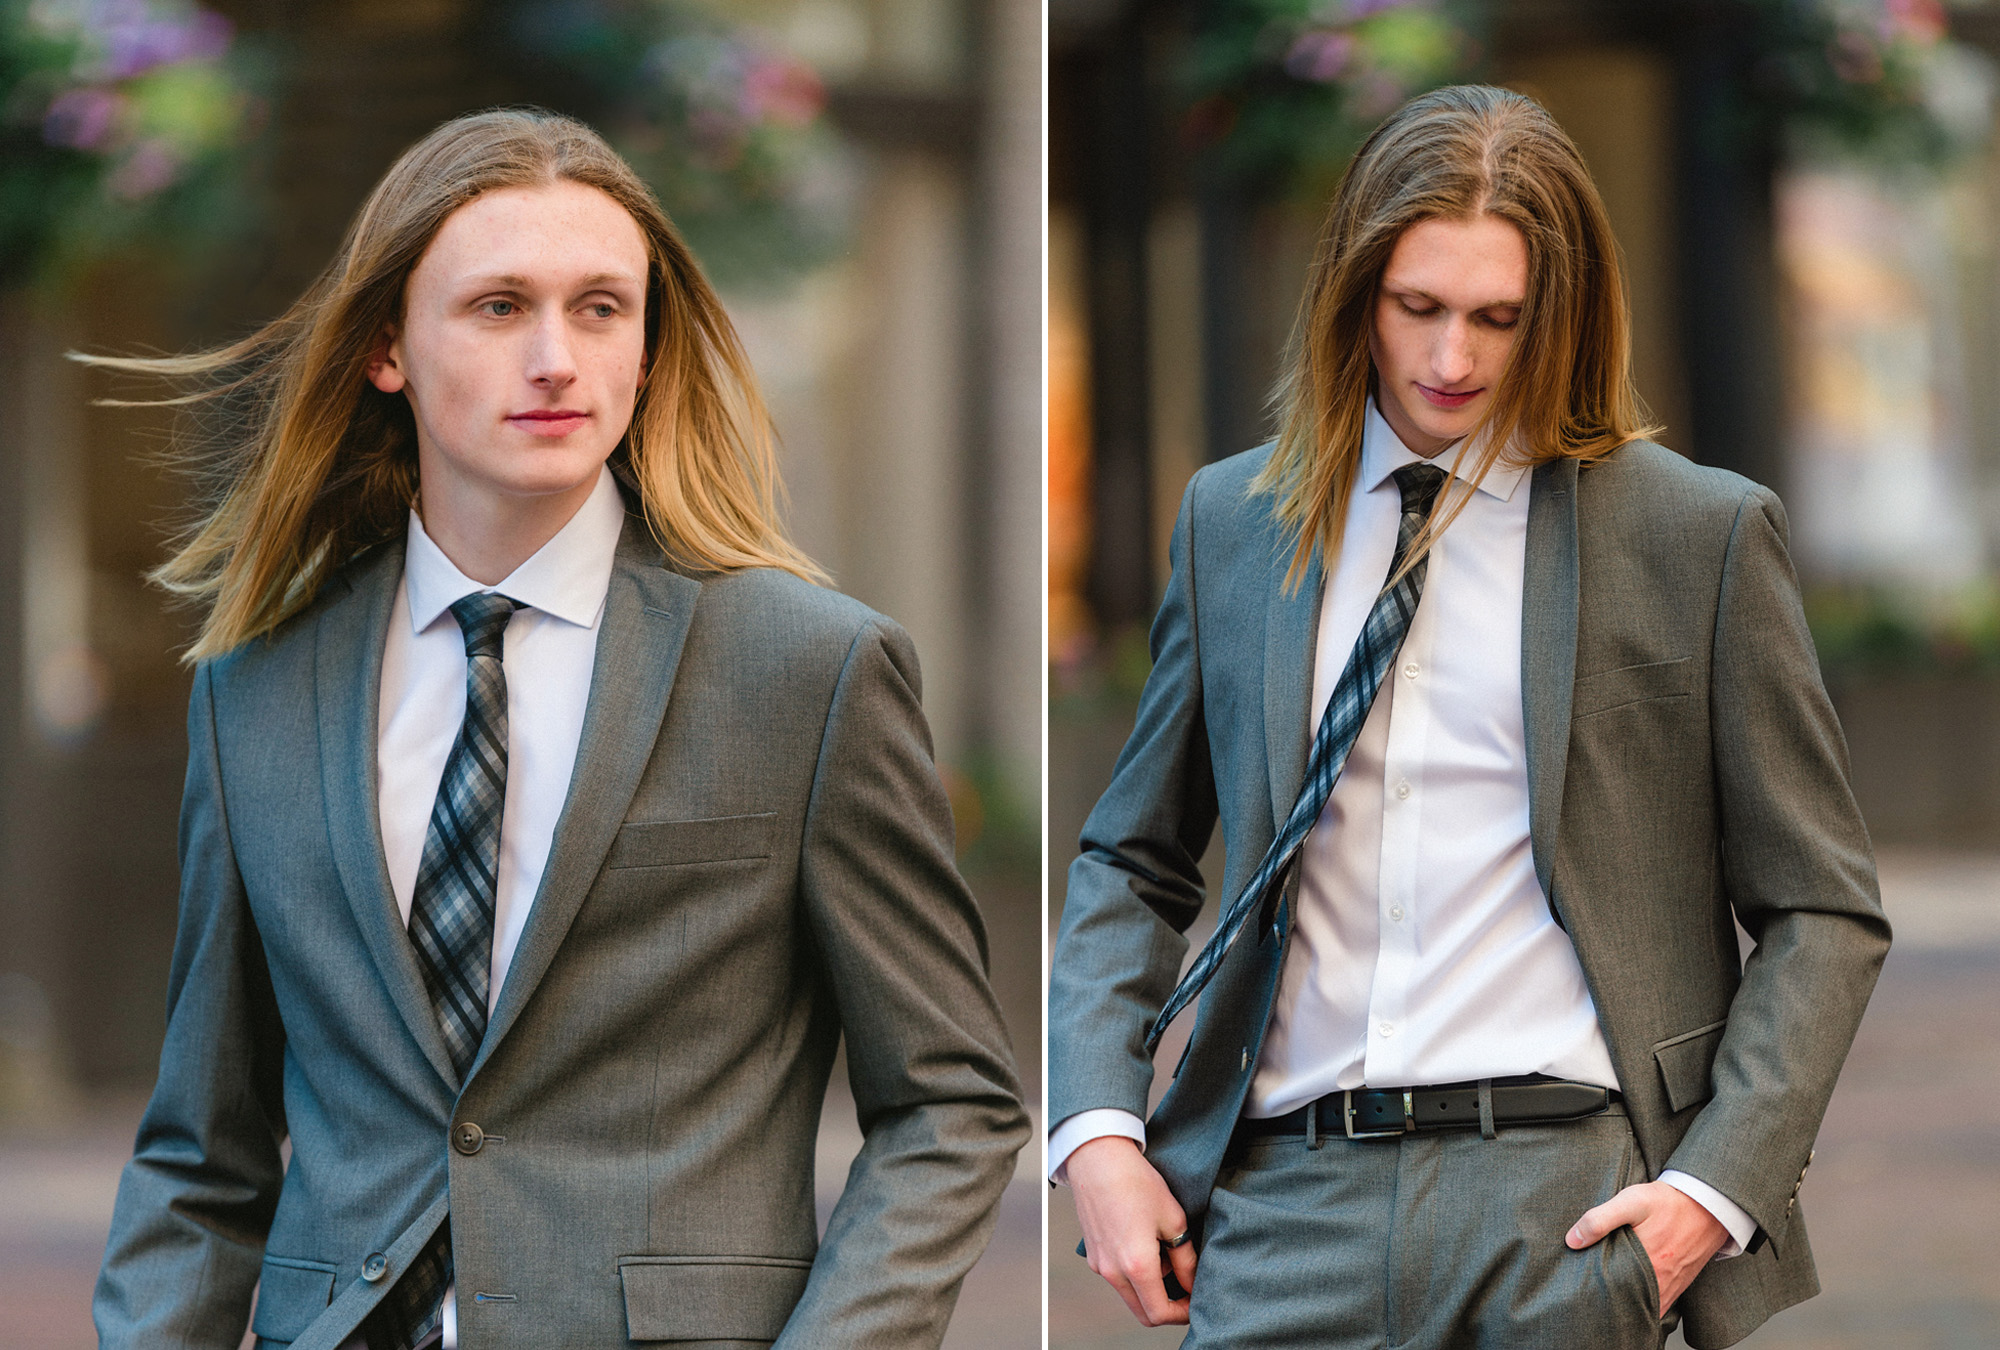 Studio B Portraits_Senior boy with long hair in suit and tie.jpg